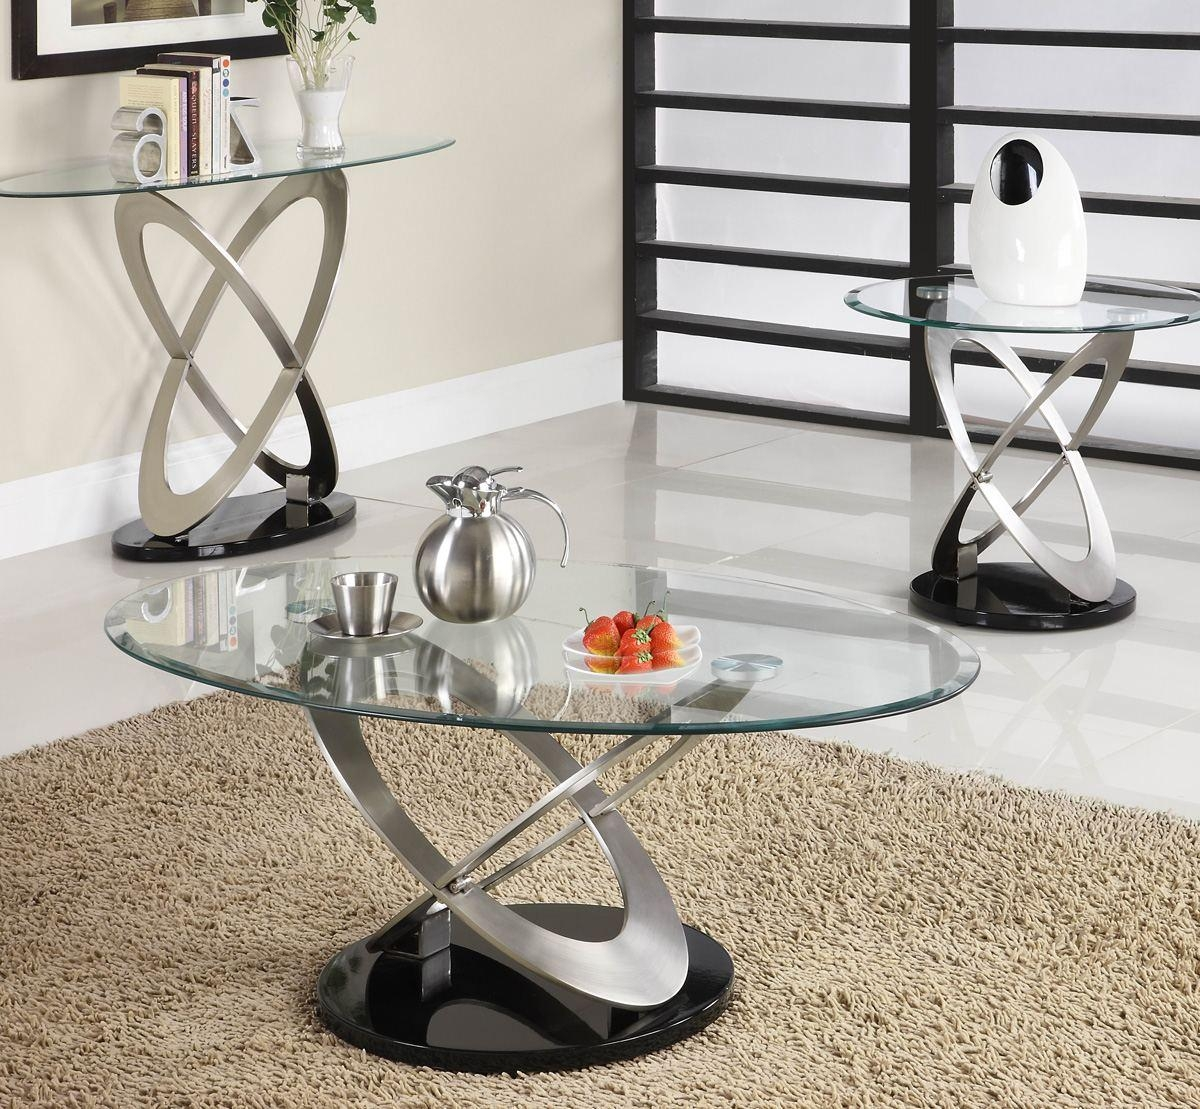 Homelegance Firth Oval Glass Sofa Table In Chrome & Black Metal In Chrome Sofa Tables (Image 9 of 20)